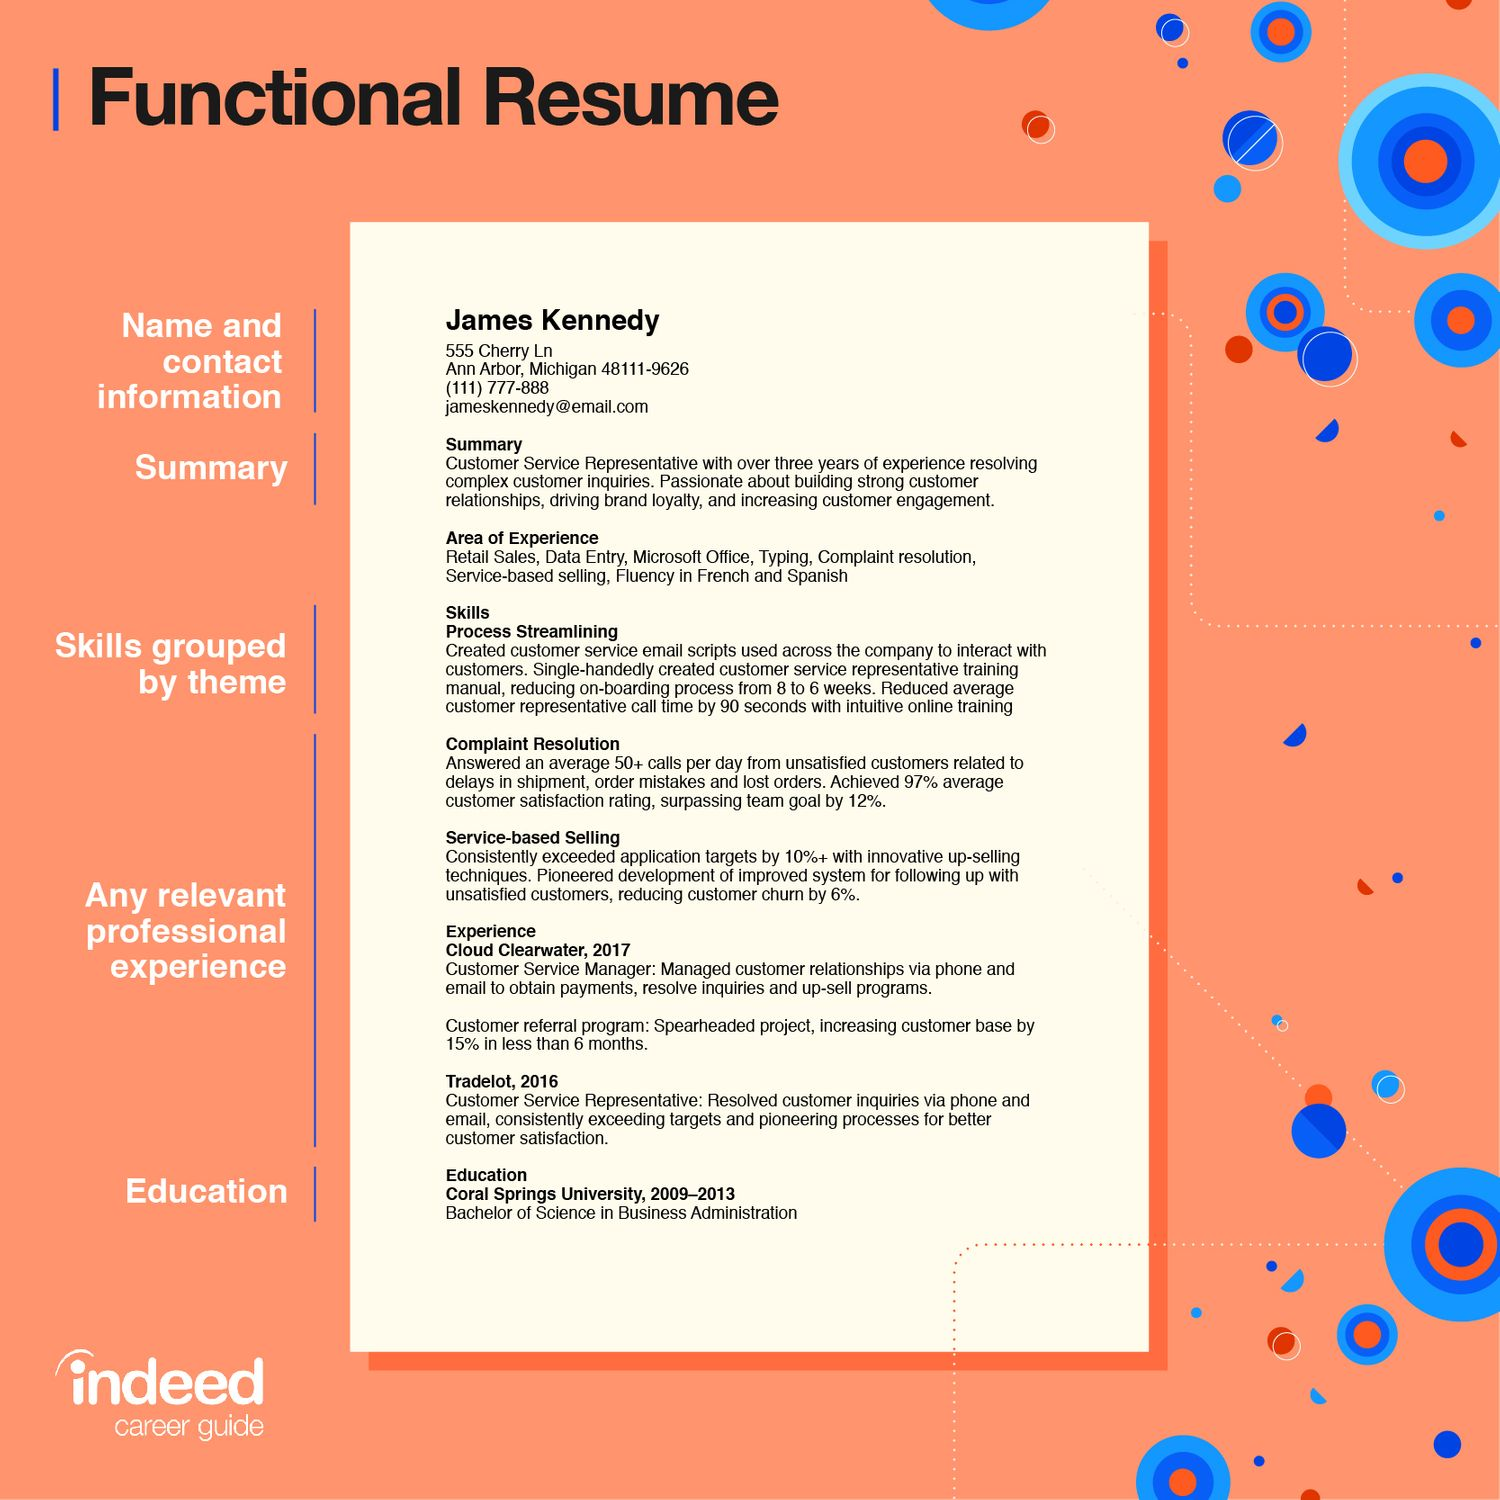 functional resume definition tips and examples indeed best format resized sample for Resume Best Functional Resume Format